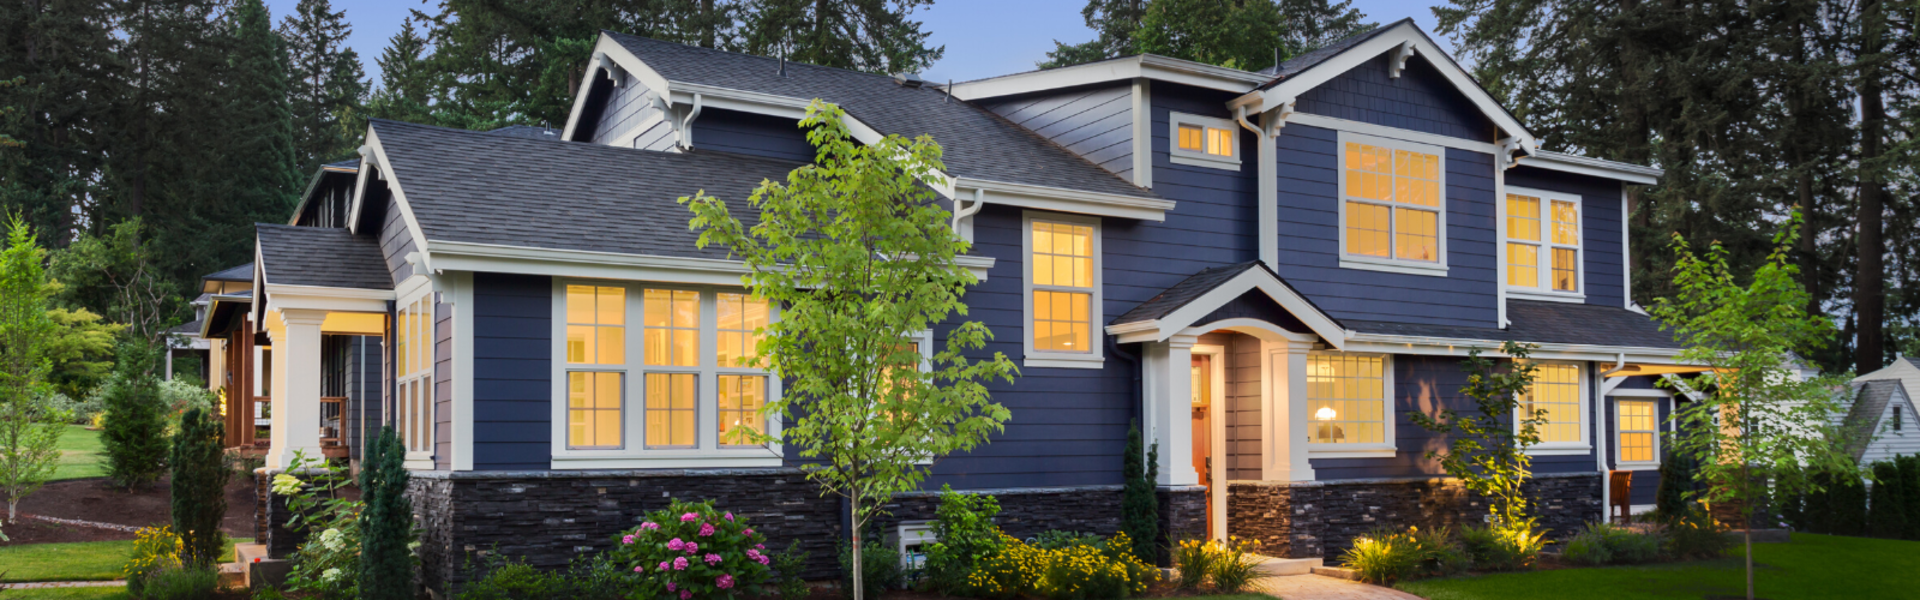 8 Steps to Buying Your Dream Home in 2020